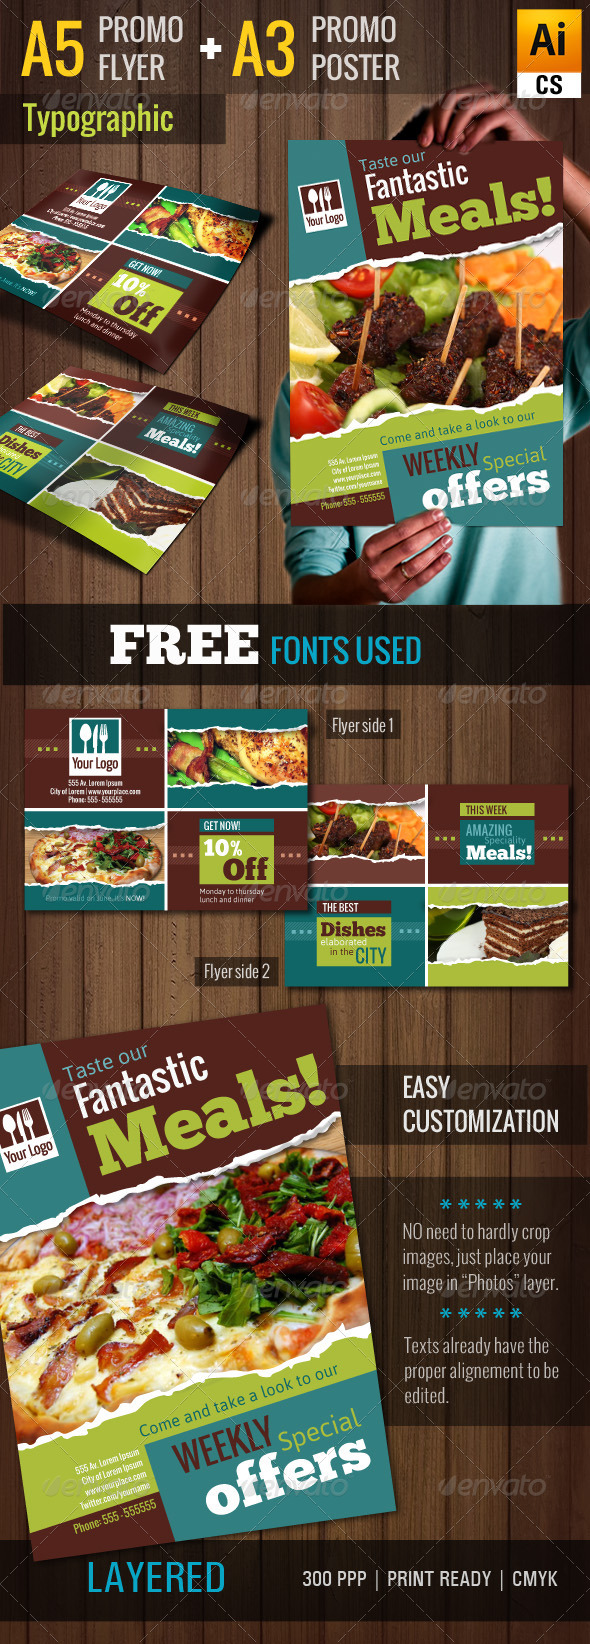 GraphicRiver Typographic Restaurant Promo Poster Flyer A3 A5 5737624